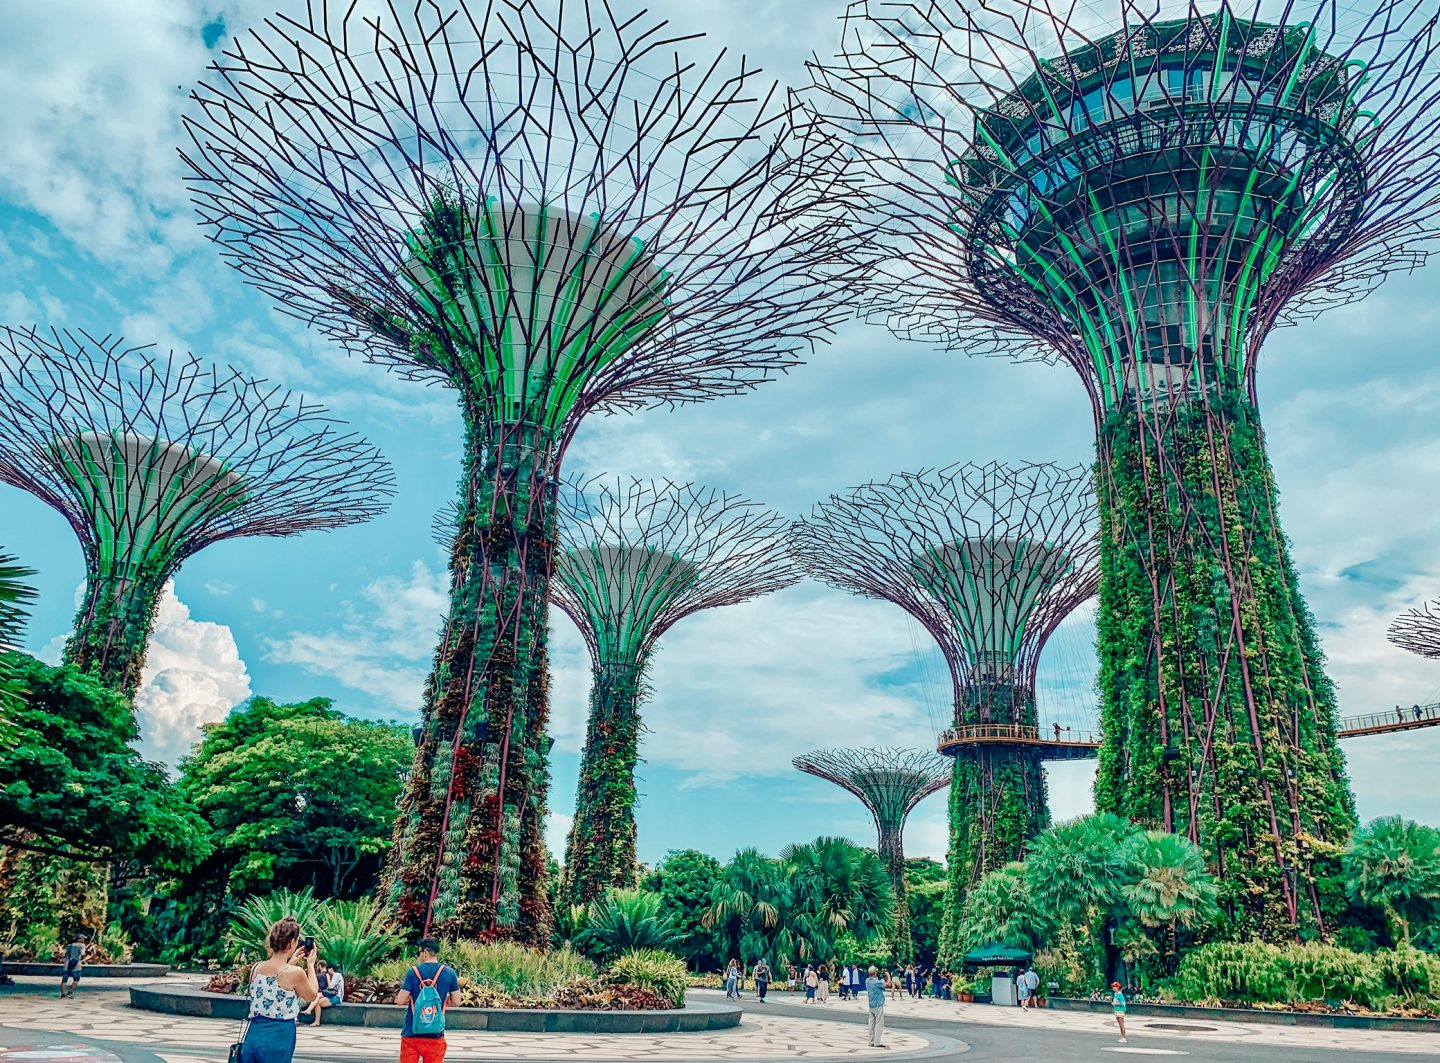 The Supertree Grove forest during the daytime in Singapore